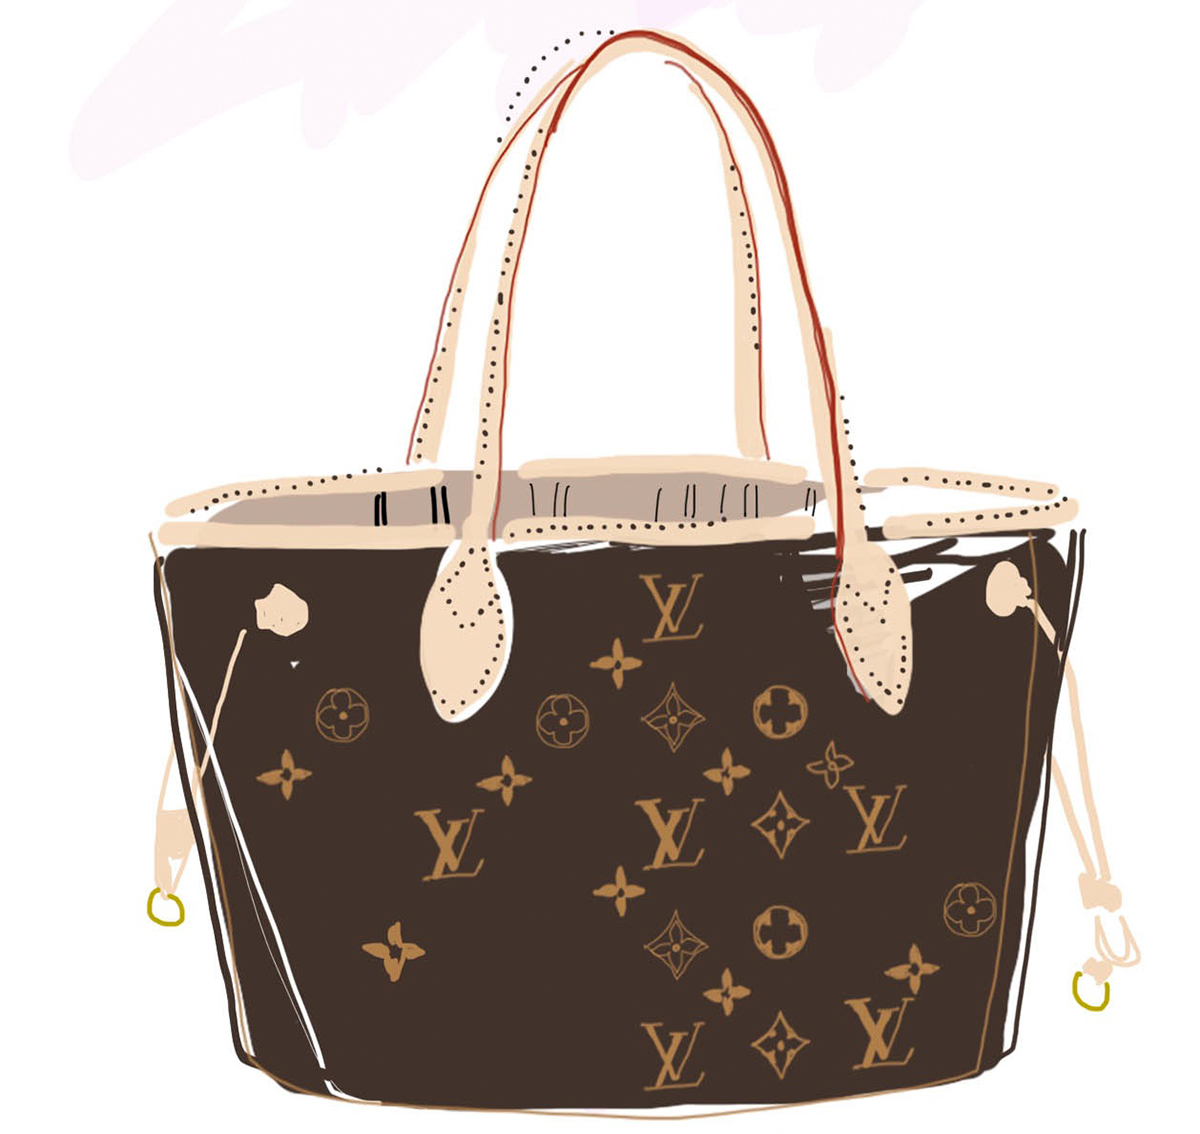 louis vuitton neverfull die ultimative mom bag fafine by anna frost. Black Bedroom Furniture Sets. Home Design Ideas